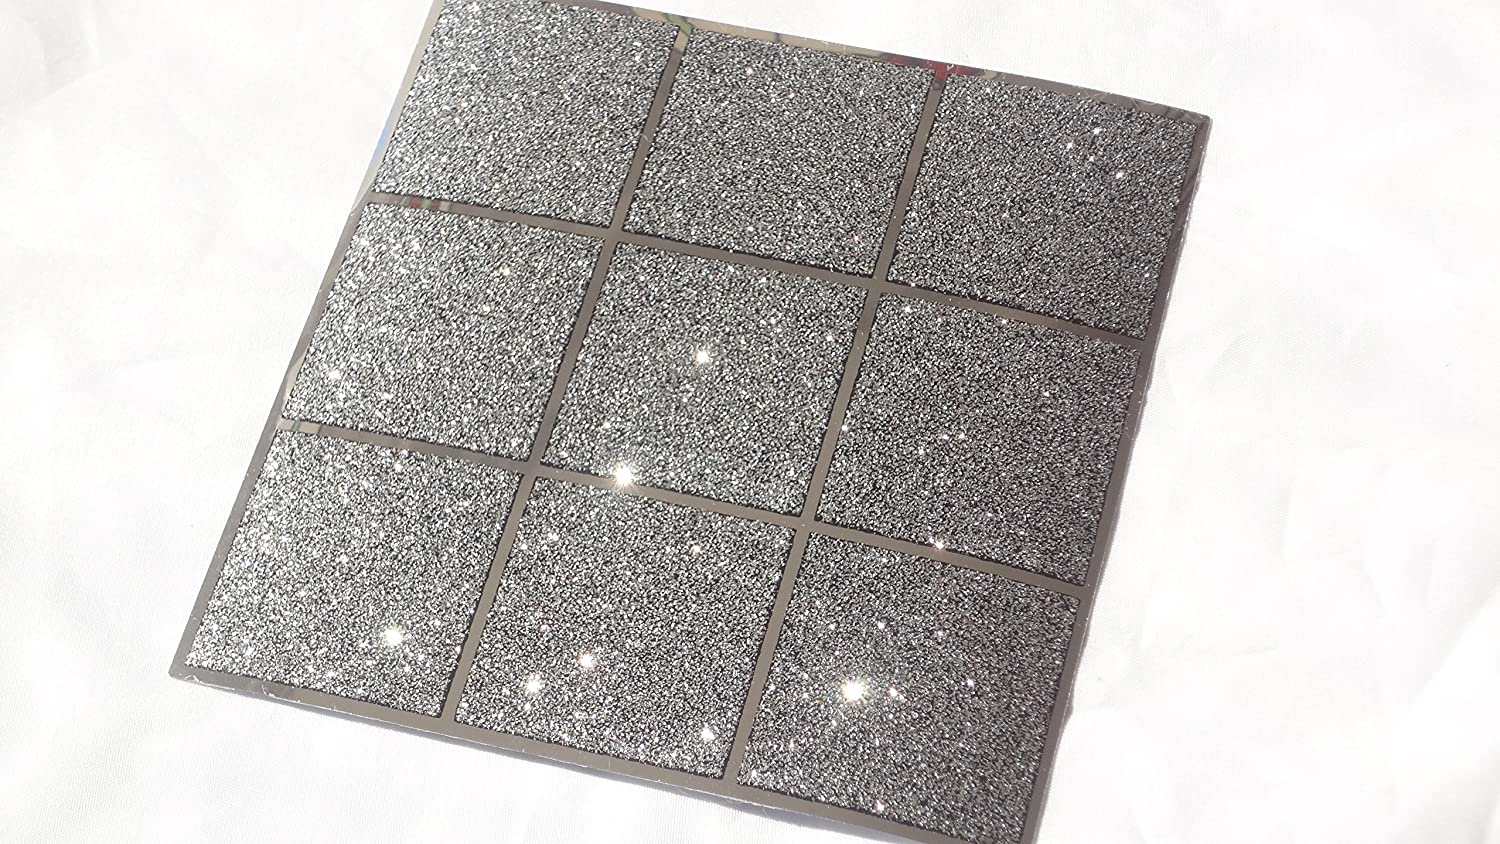 Pack Of 10 Black And Silver Glitter Mosaic Tile Transfers Stickers Bathroom  Kitchen Stick On Wall Tile Peel And Stick Size 6X6: Amazon.co.uk: Kitchen U0026  Home Part 85